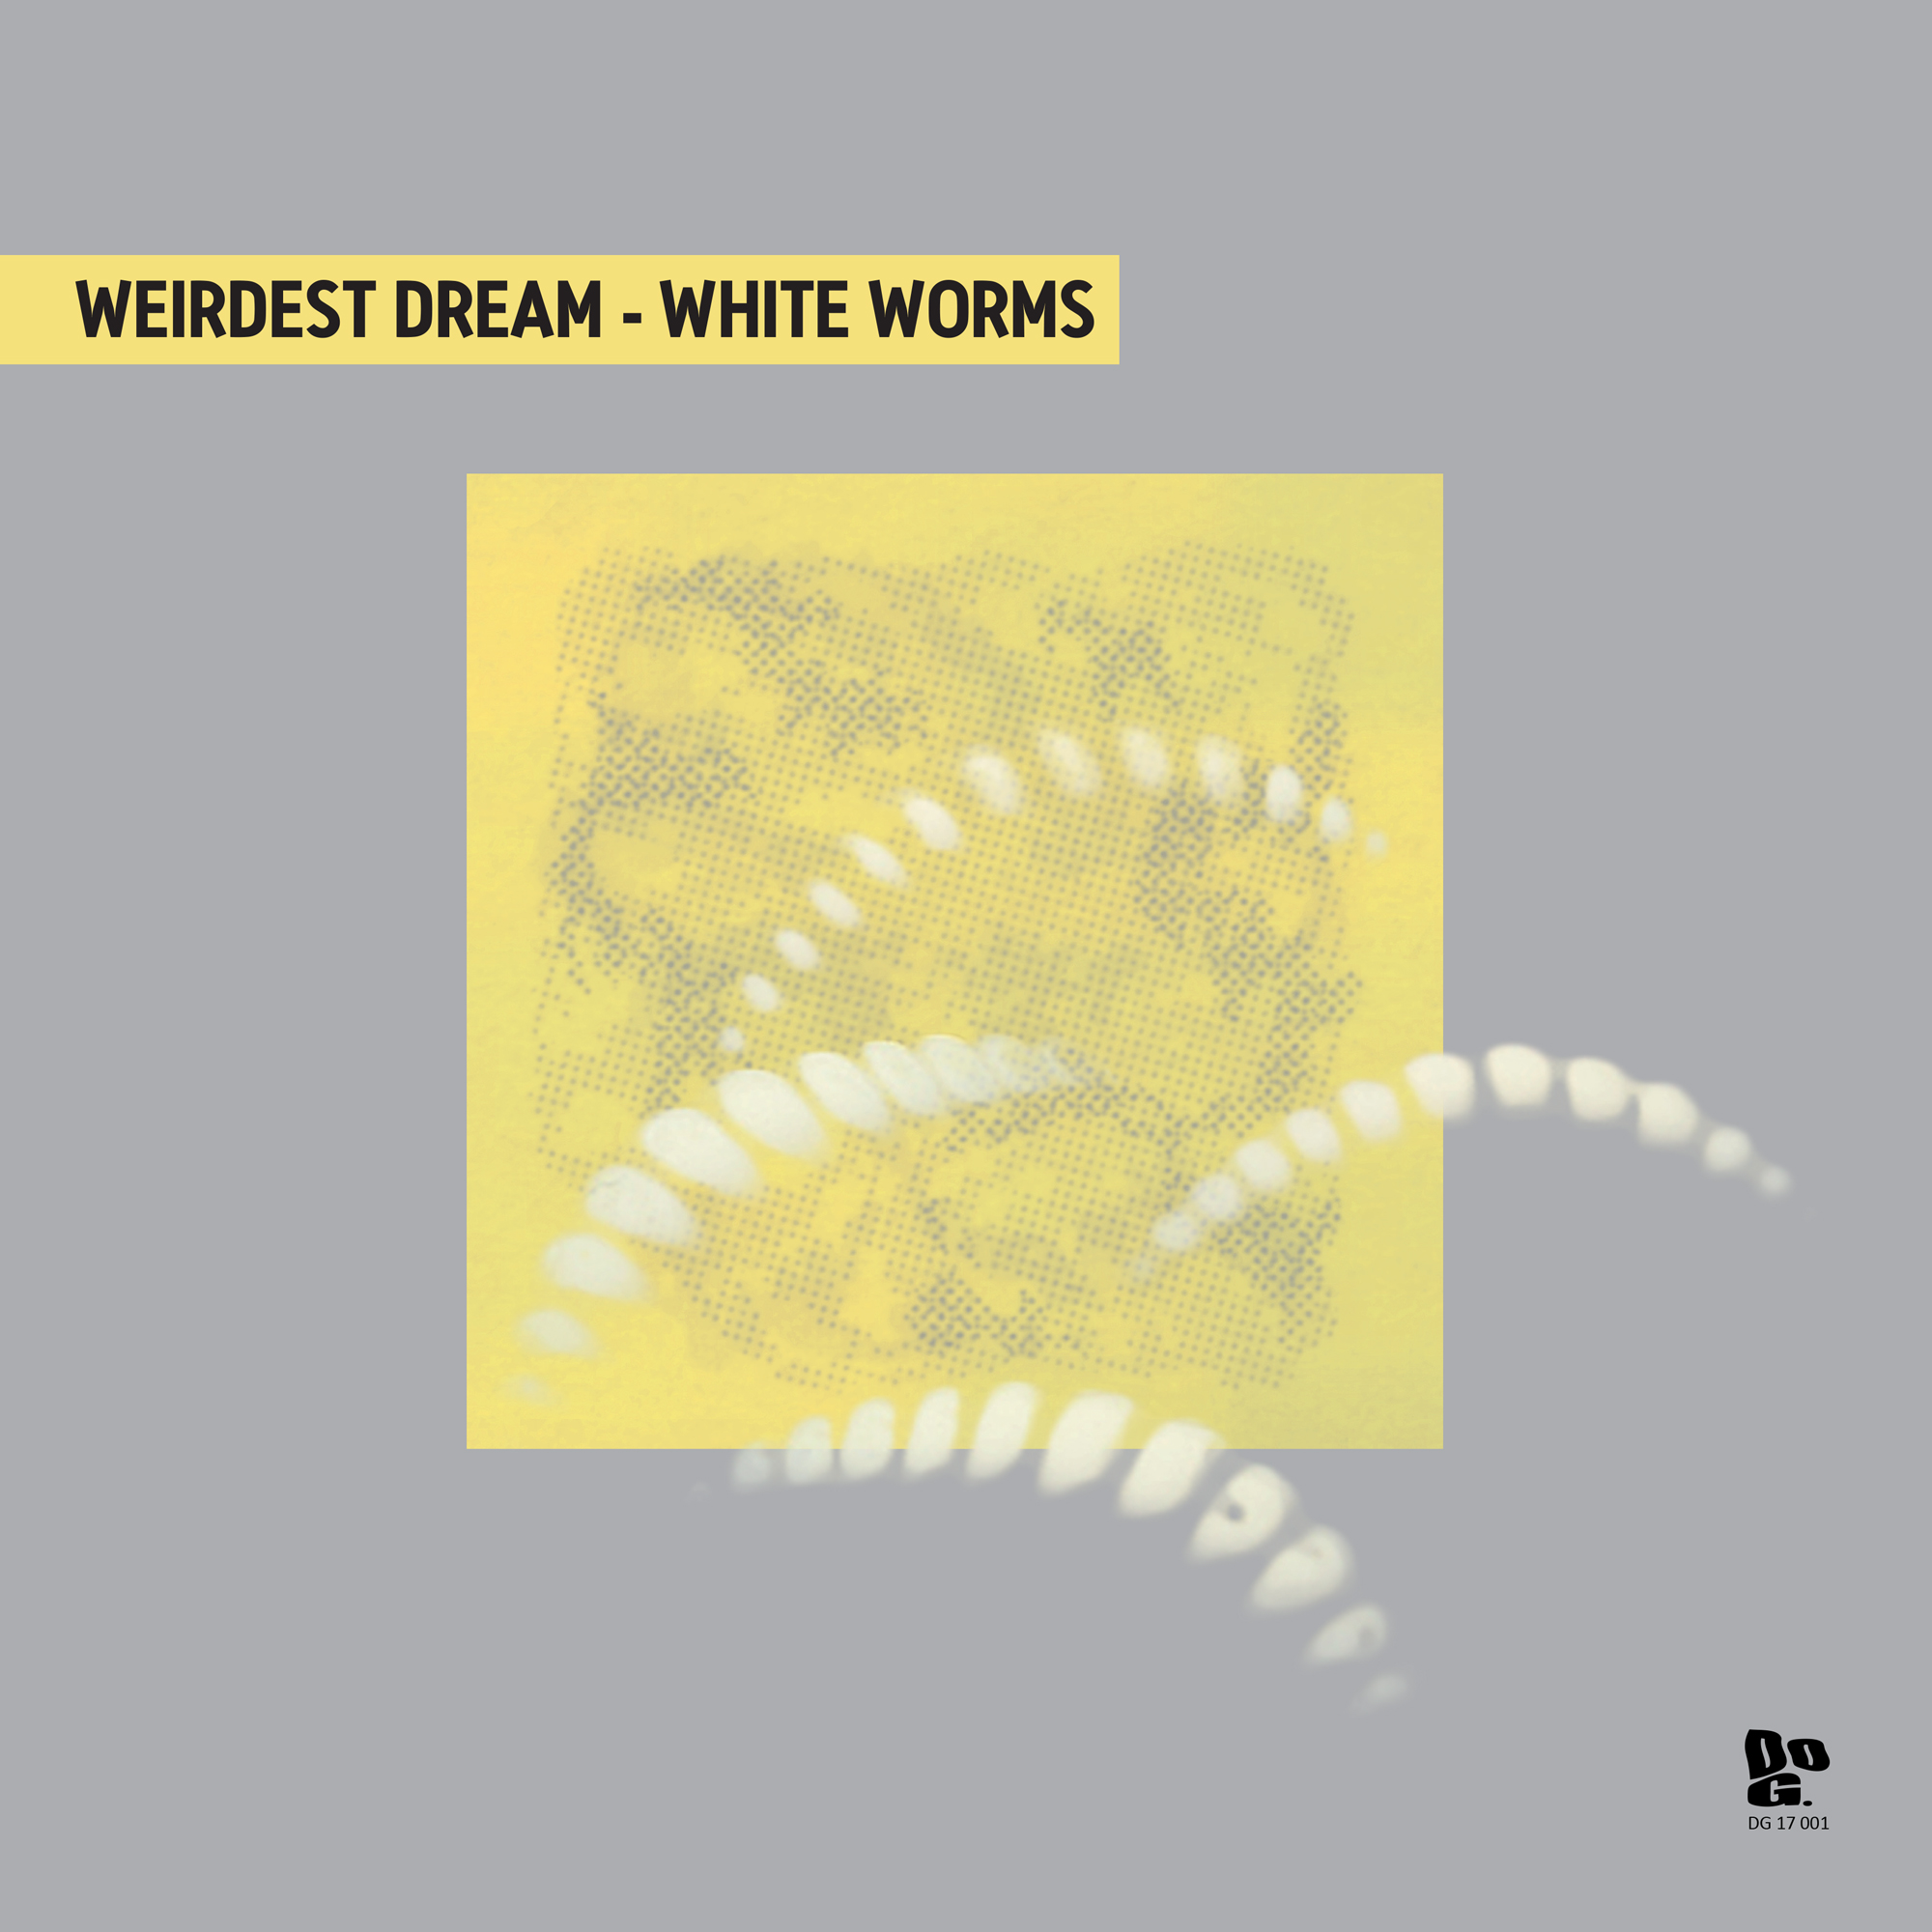 Weirdest Dream White Worms